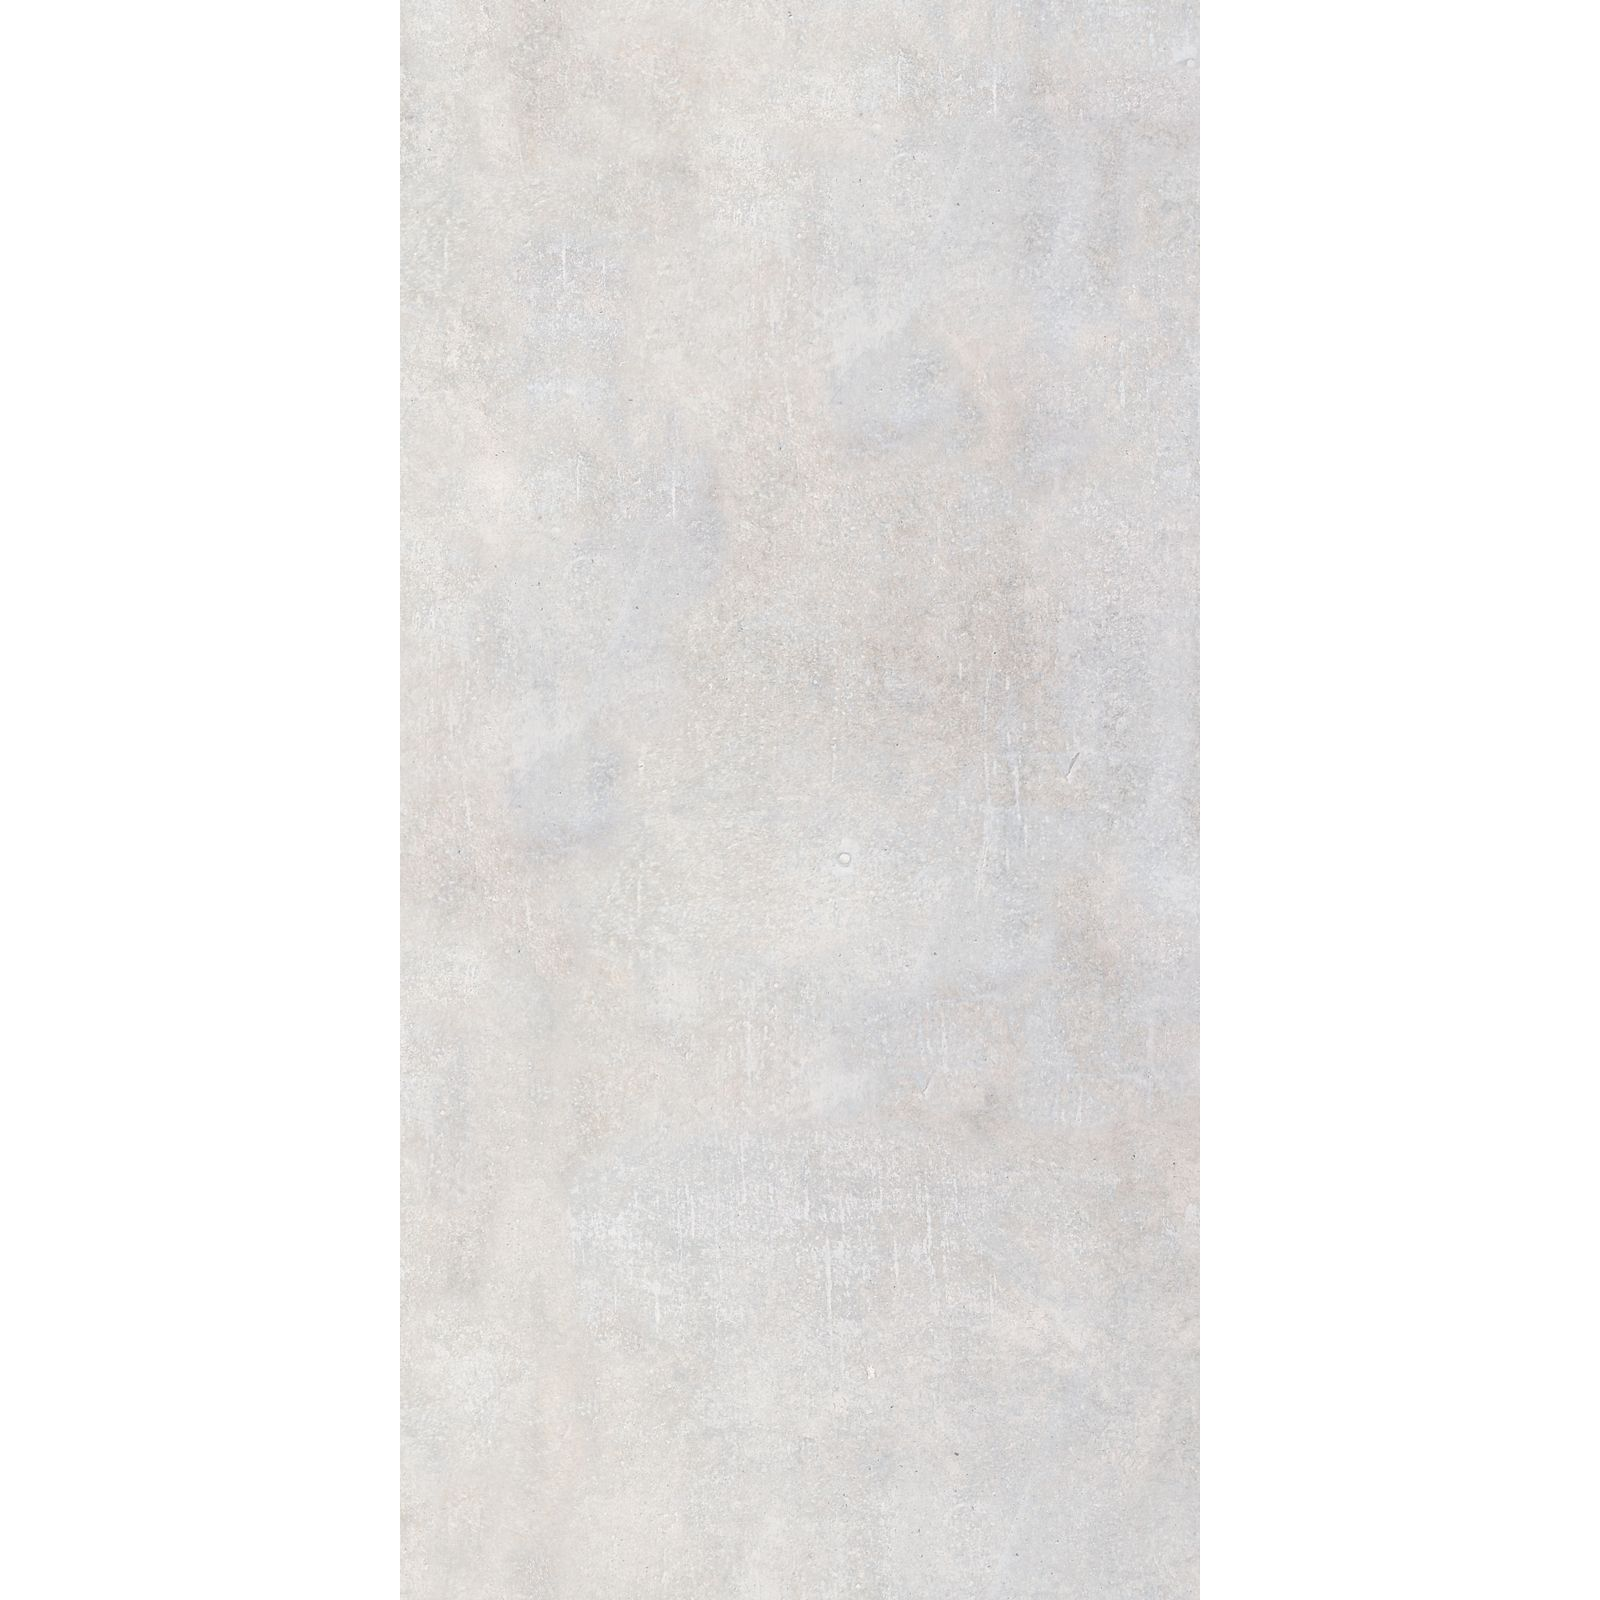 Find urban light grey ceramic wall floor tile 5 pack at find urban light grey ceramic wall floor tile 5 pack at homebase visit dailygadgetfo Gallery